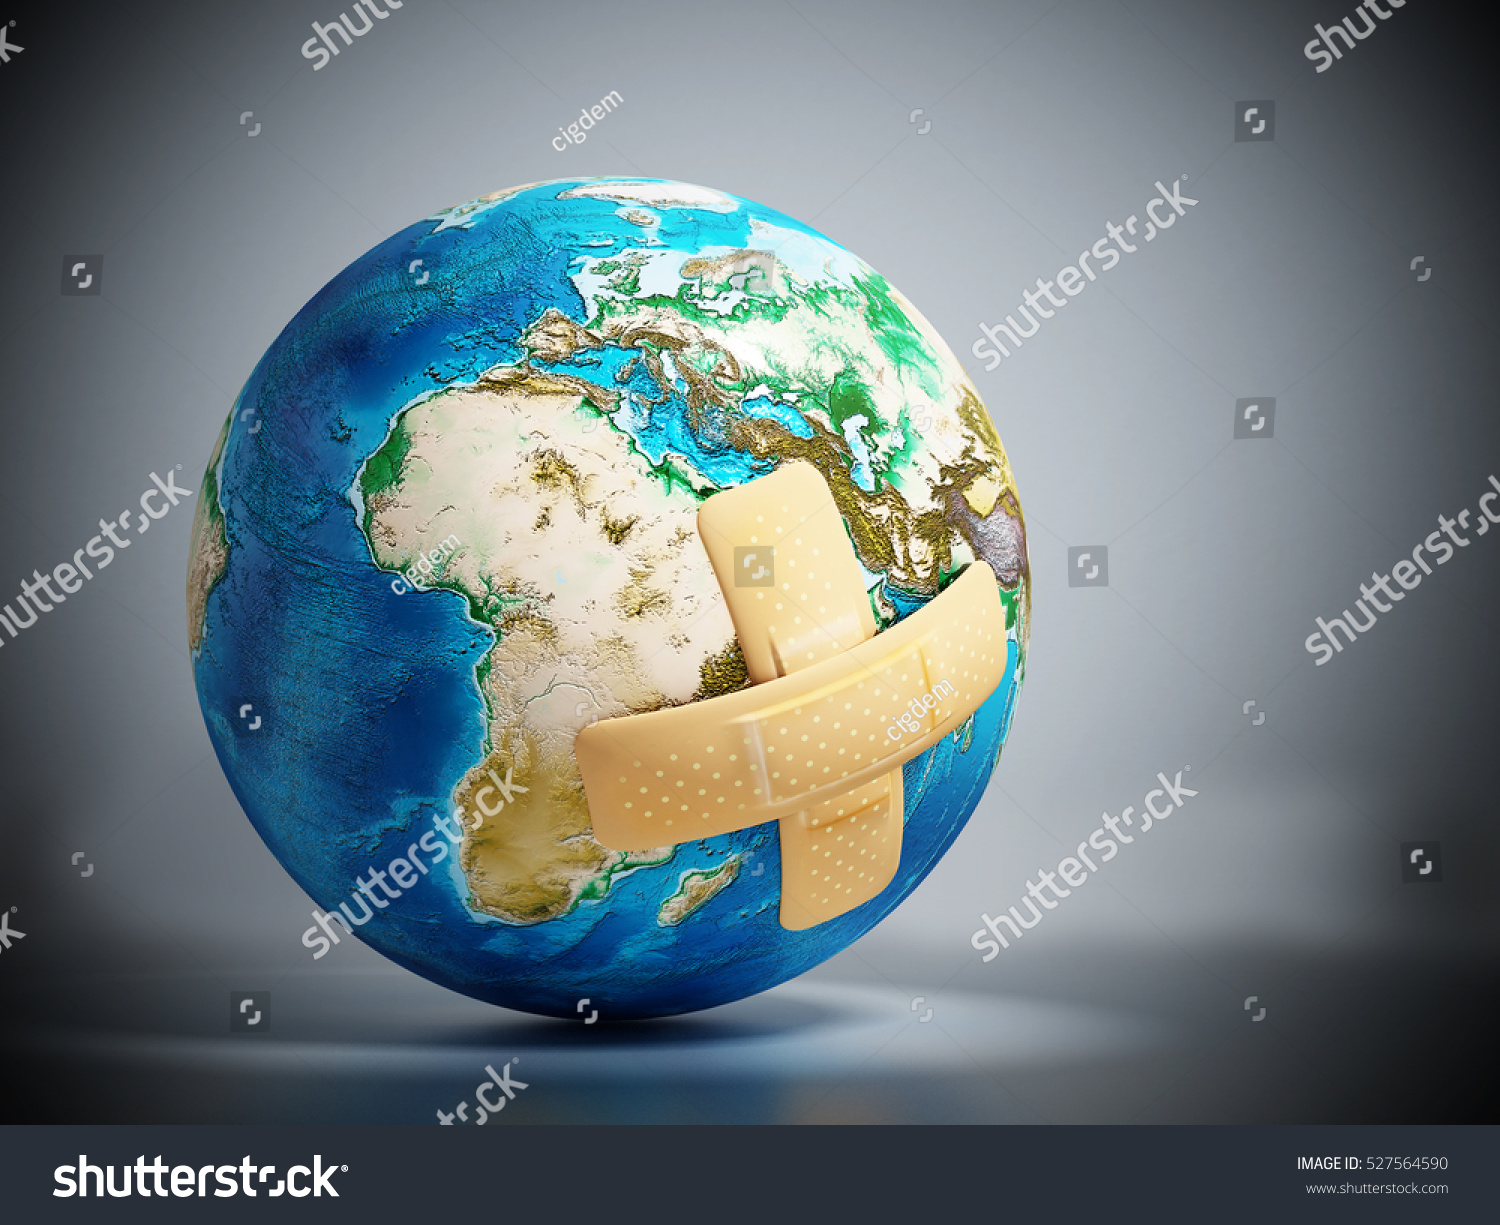 Crossed bandaids on earth model 3d stock illustration 527564590 crossed band aids on earth model 3d illustration sciox Gallery